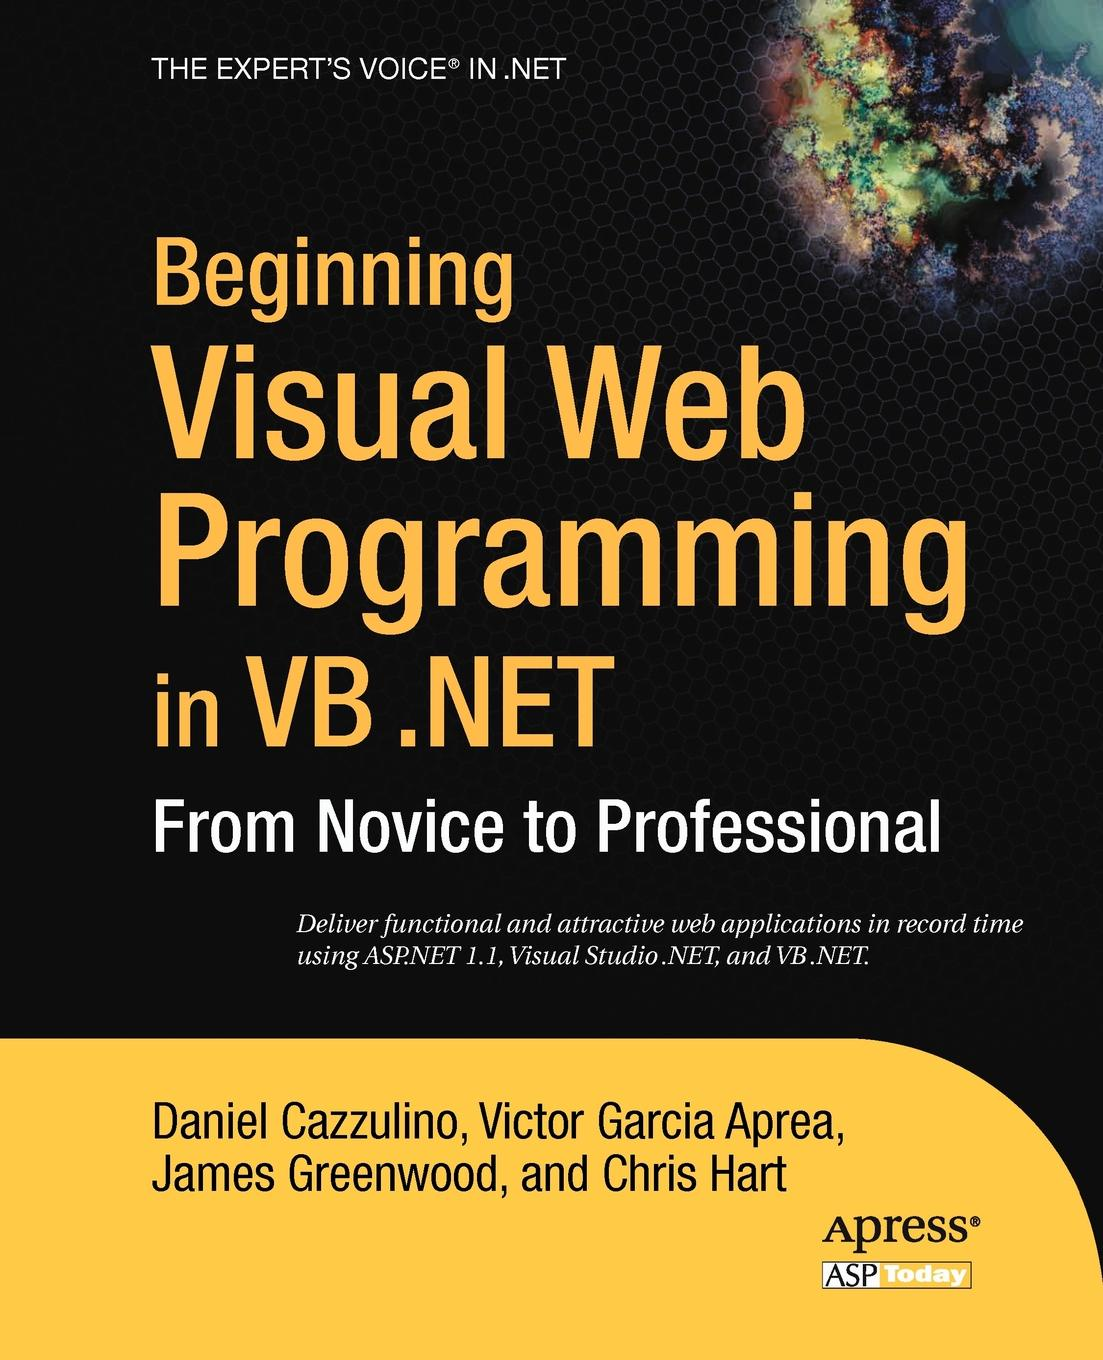 Daniel Cazzulino, Craig Bowes, Mike Clark Beginning Visual Web Programming in VB .Net. From Novice to Professional laurence moroney beginning web development silverlight and asp net ajax from novice to professional